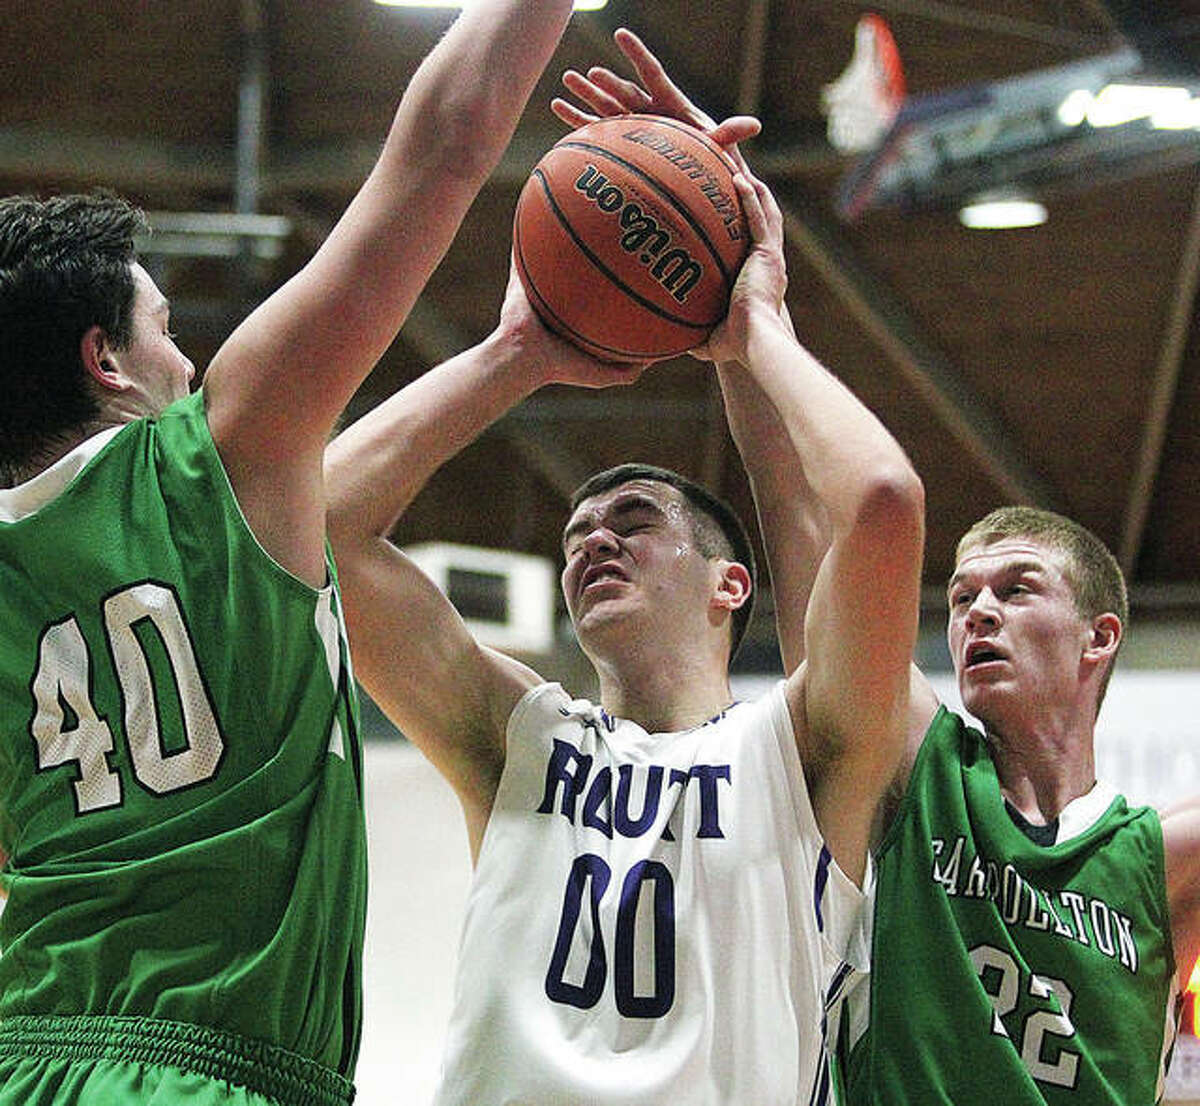 Carrollton's Gabe Jones (22) reaches up to block a shot by Routt's Brooks Moore during a game Thursday night in Jacksonville.